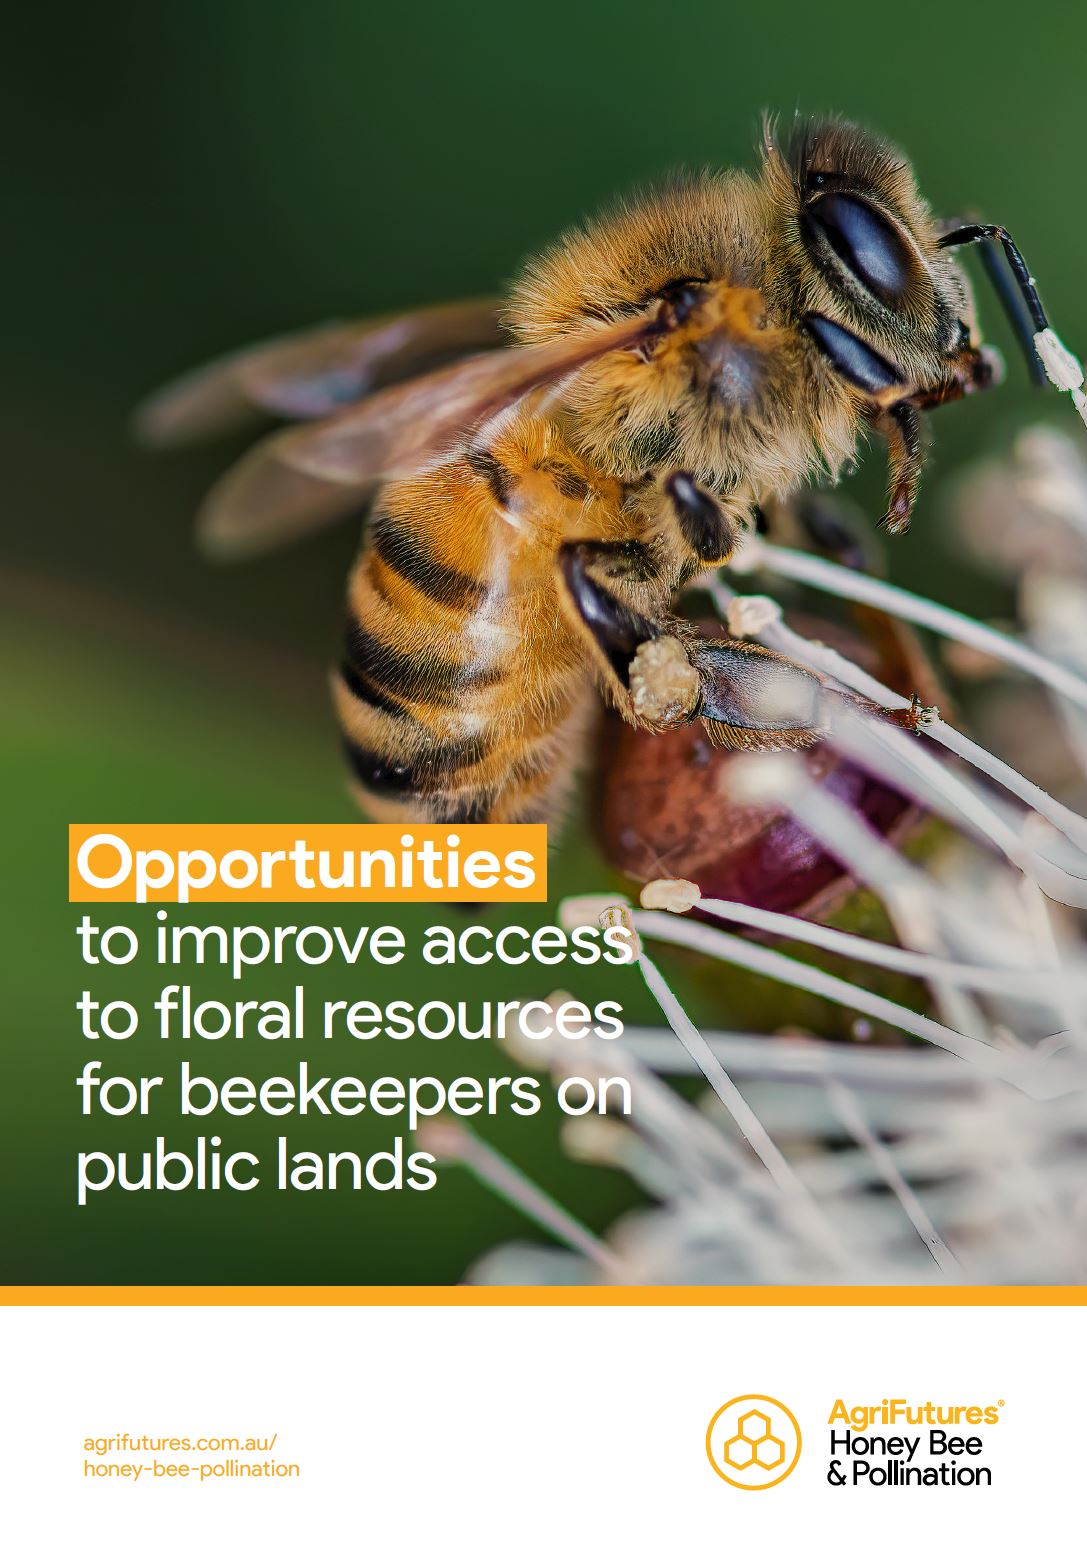 Opportunities to improve access to floral resources for beekeepers on public lands - image